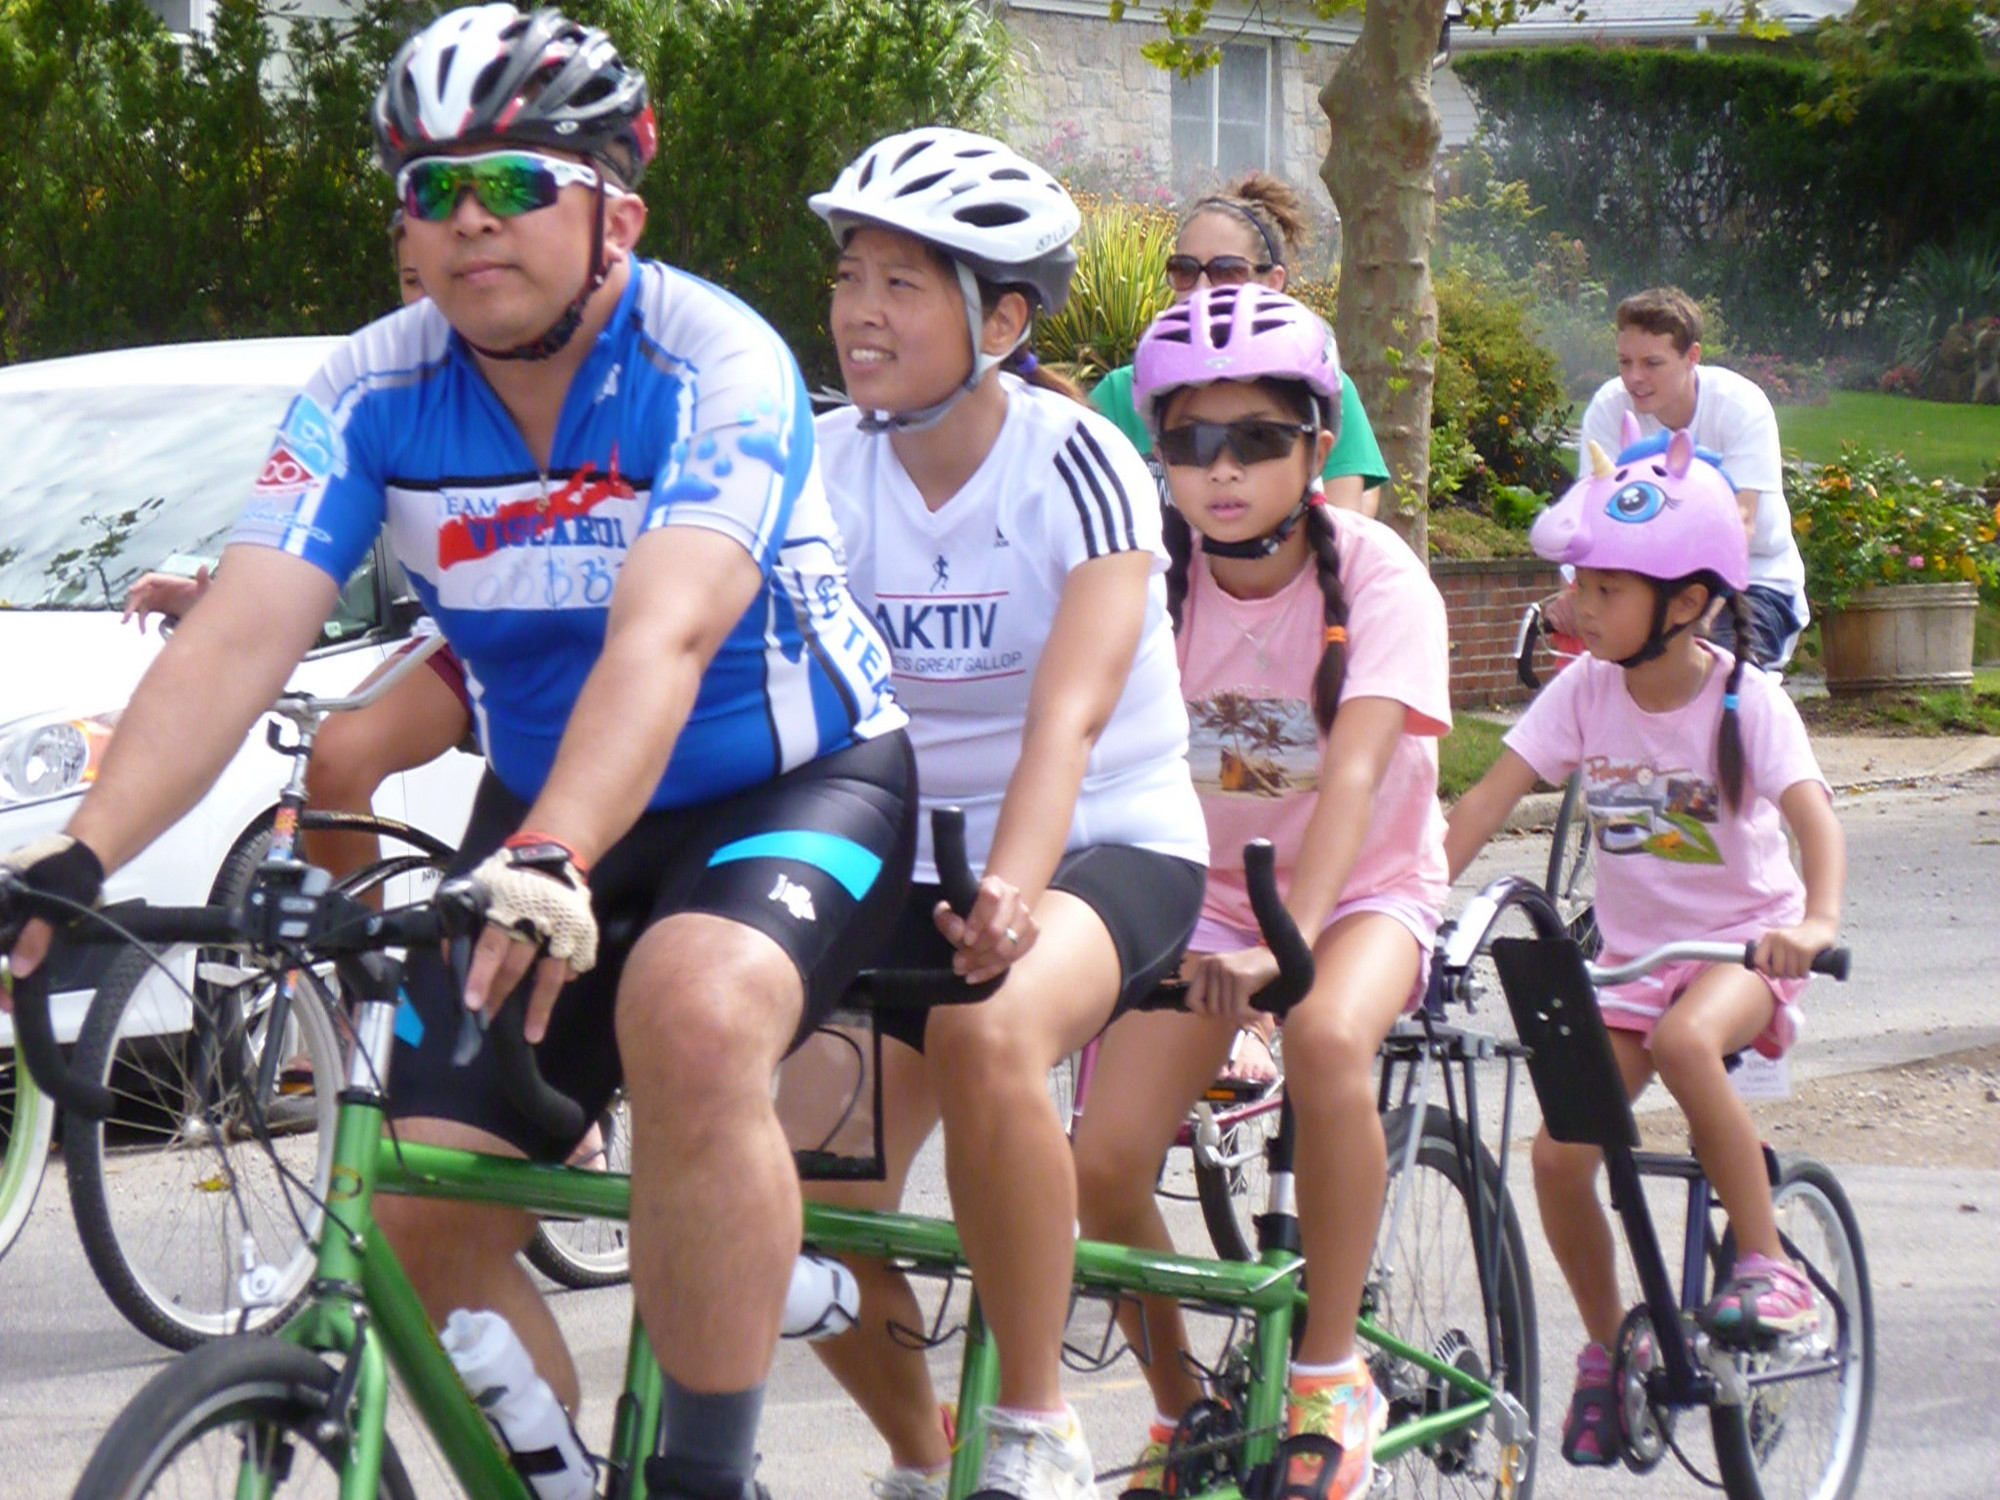 The CURB event was a family affair for the Chu family of Glen Cove, who rode on a bicycle built for four.